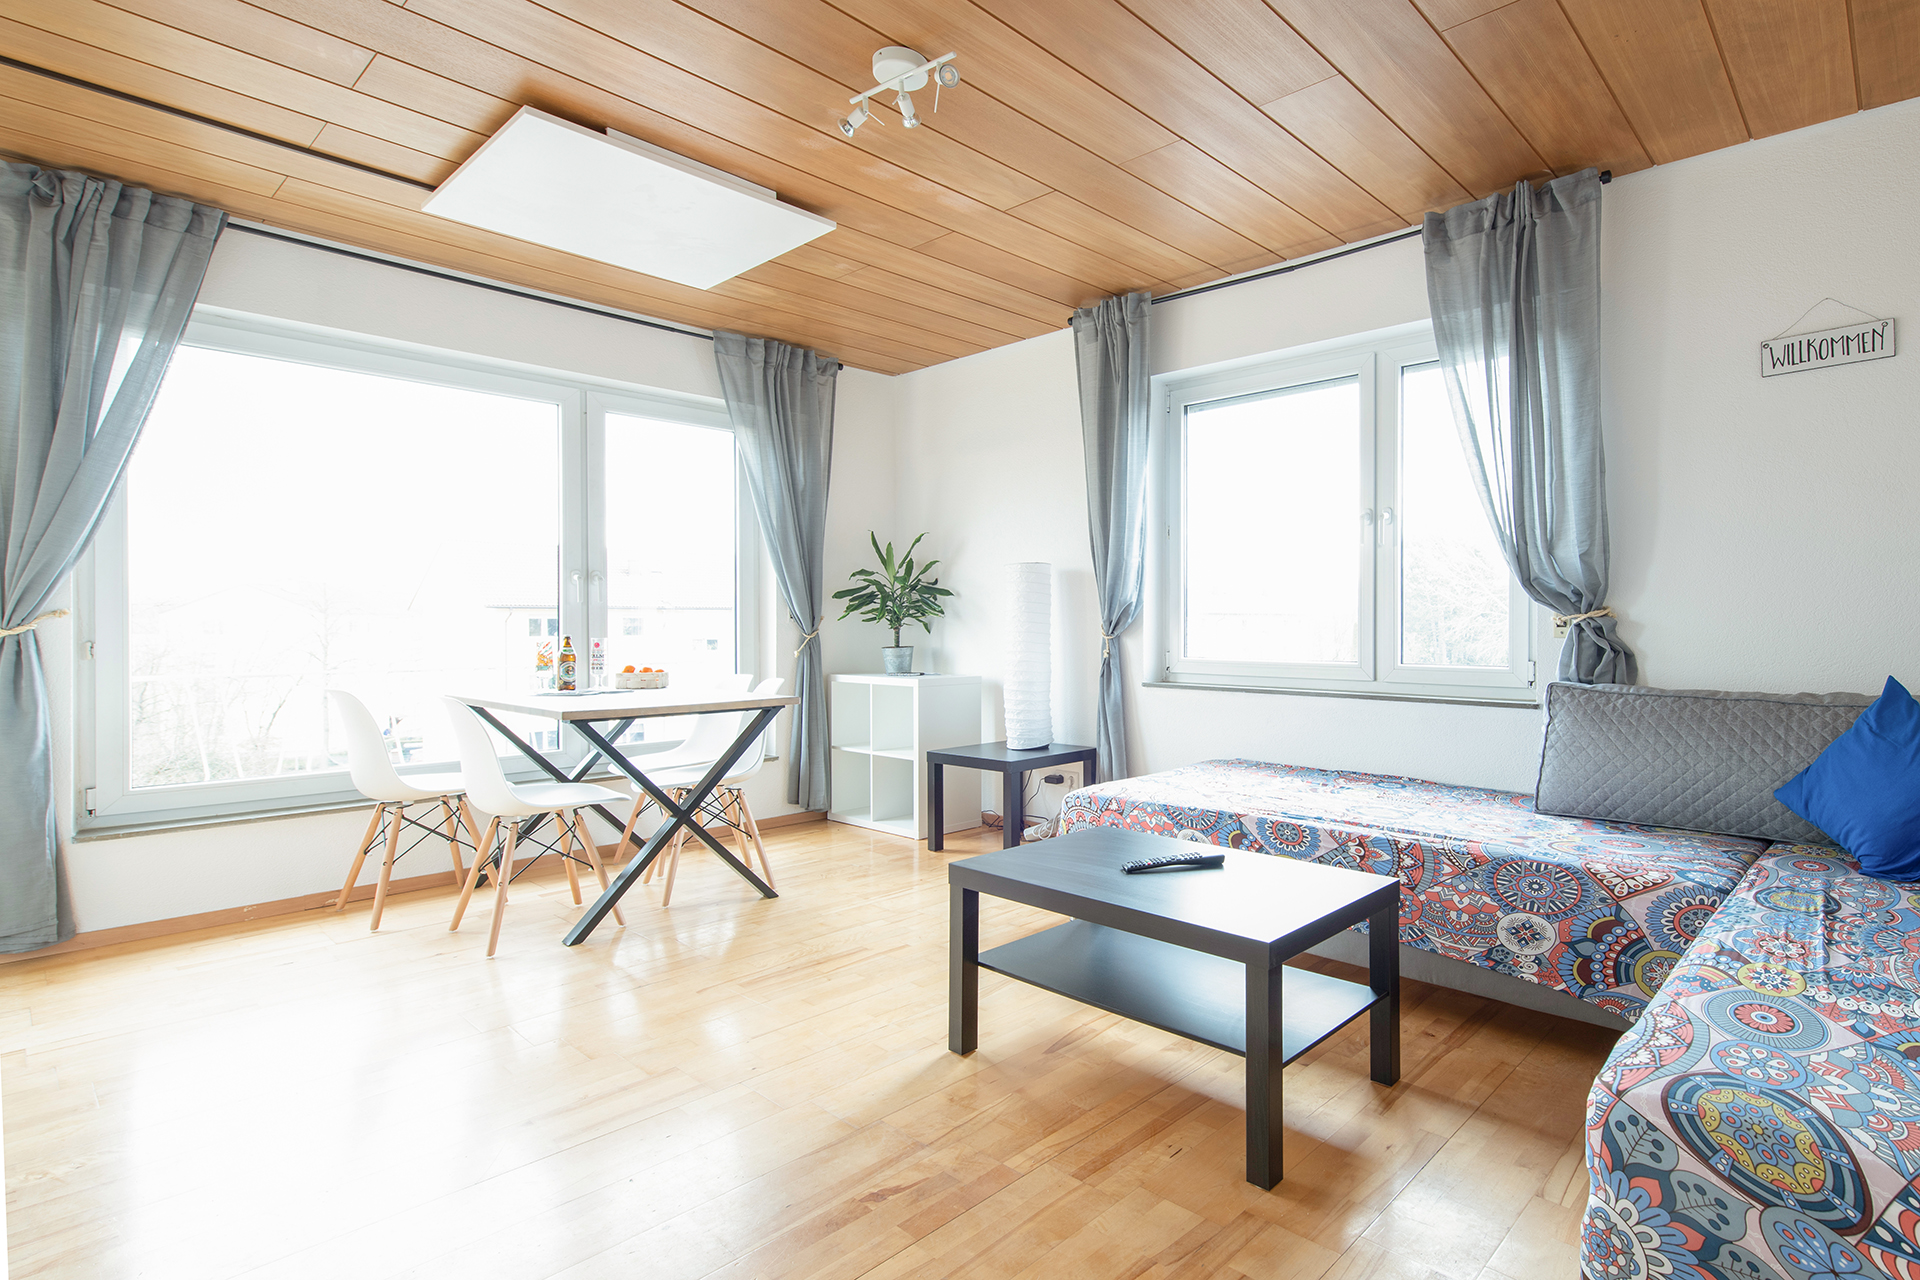 Holiday apartments on Lake Constance: Friedrichshafen - Living Room